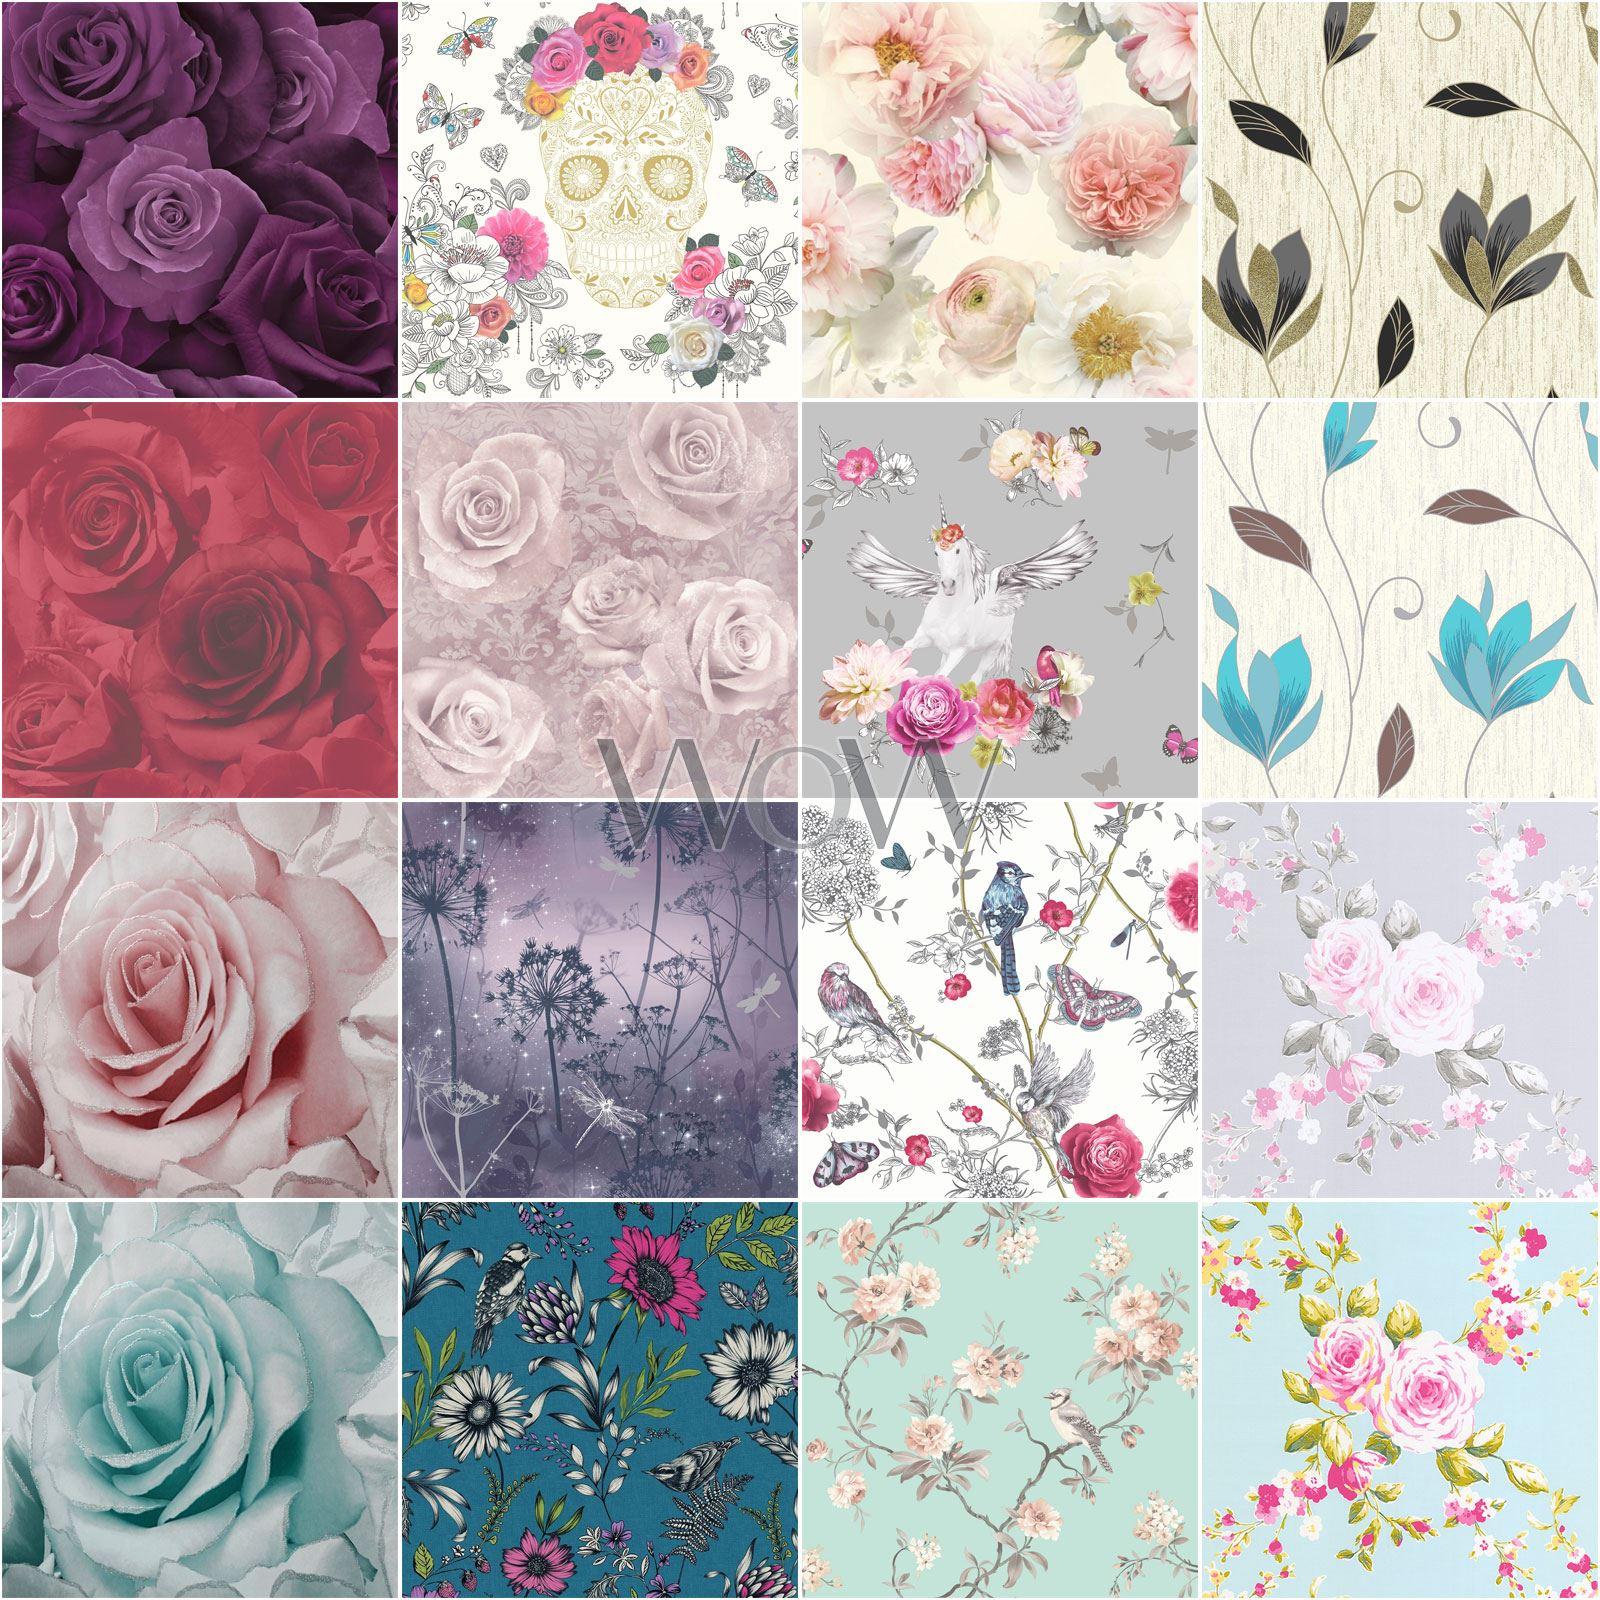 RASCH 442229 SHABBY CHIC ROSE WALLPAPER TEAL FLORAL FEATURE WALL NEW